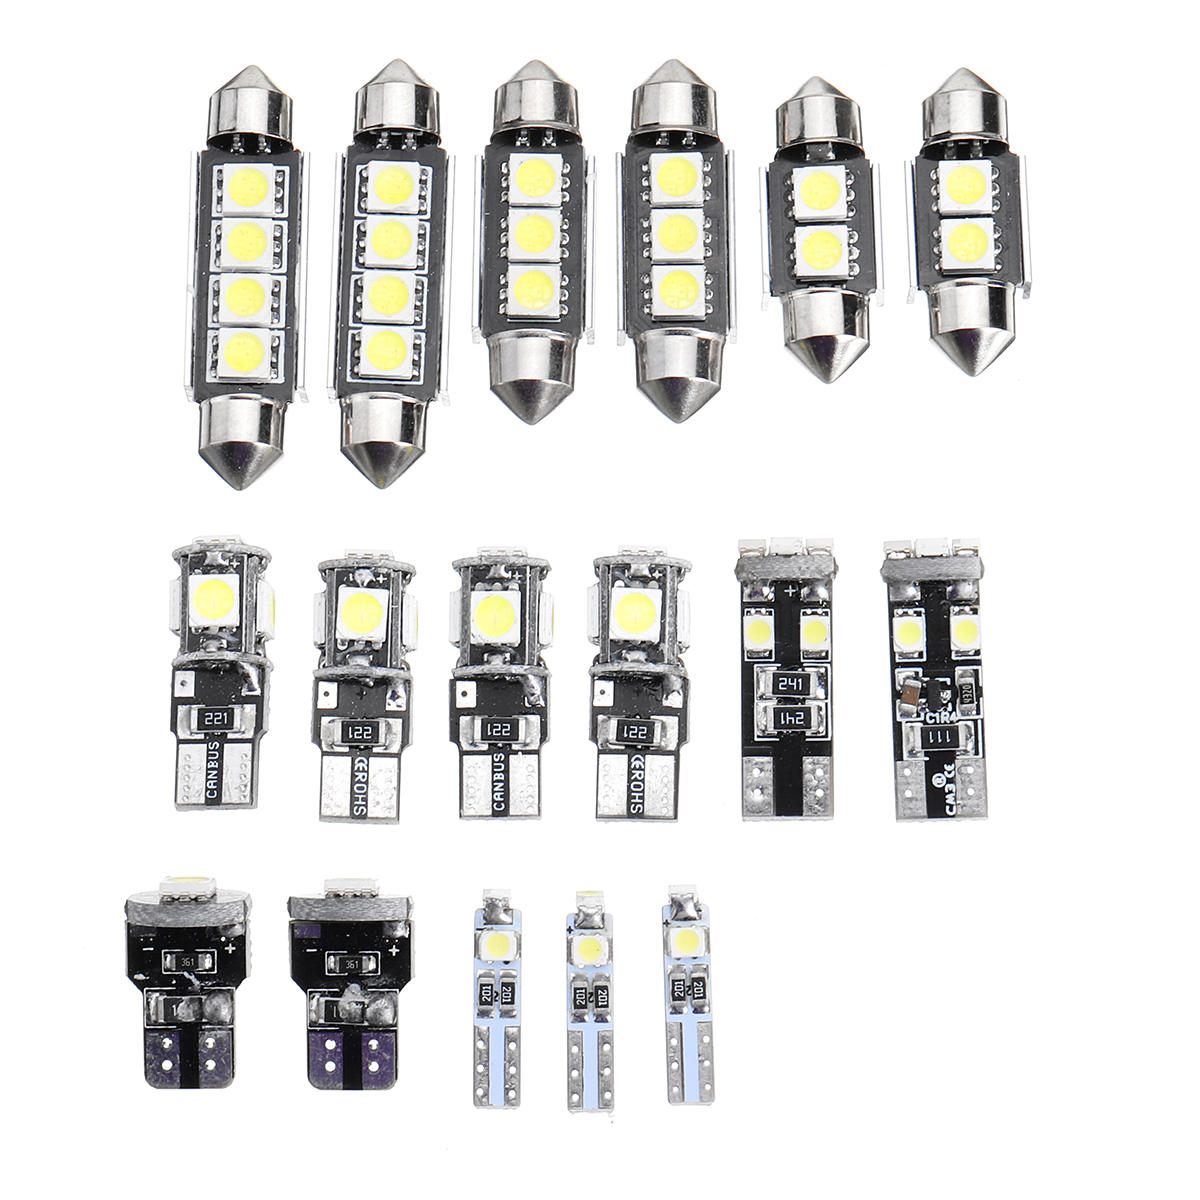 T10 T5 White Car Interior Led Lamp Replacement Bulb